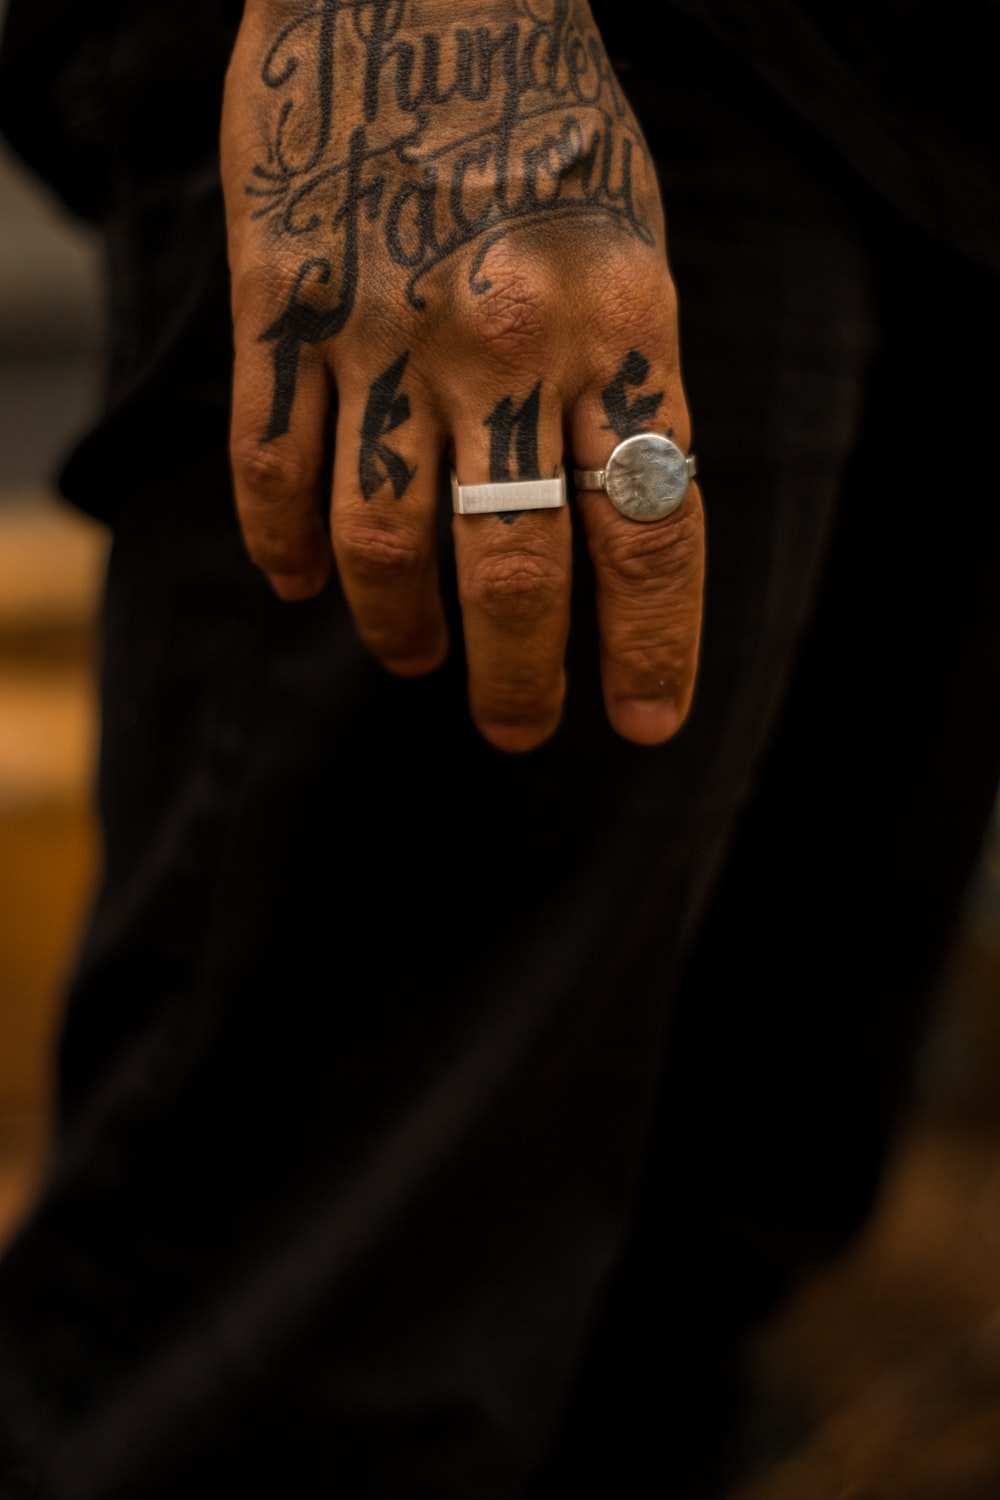 Finger Tattoos are always in style